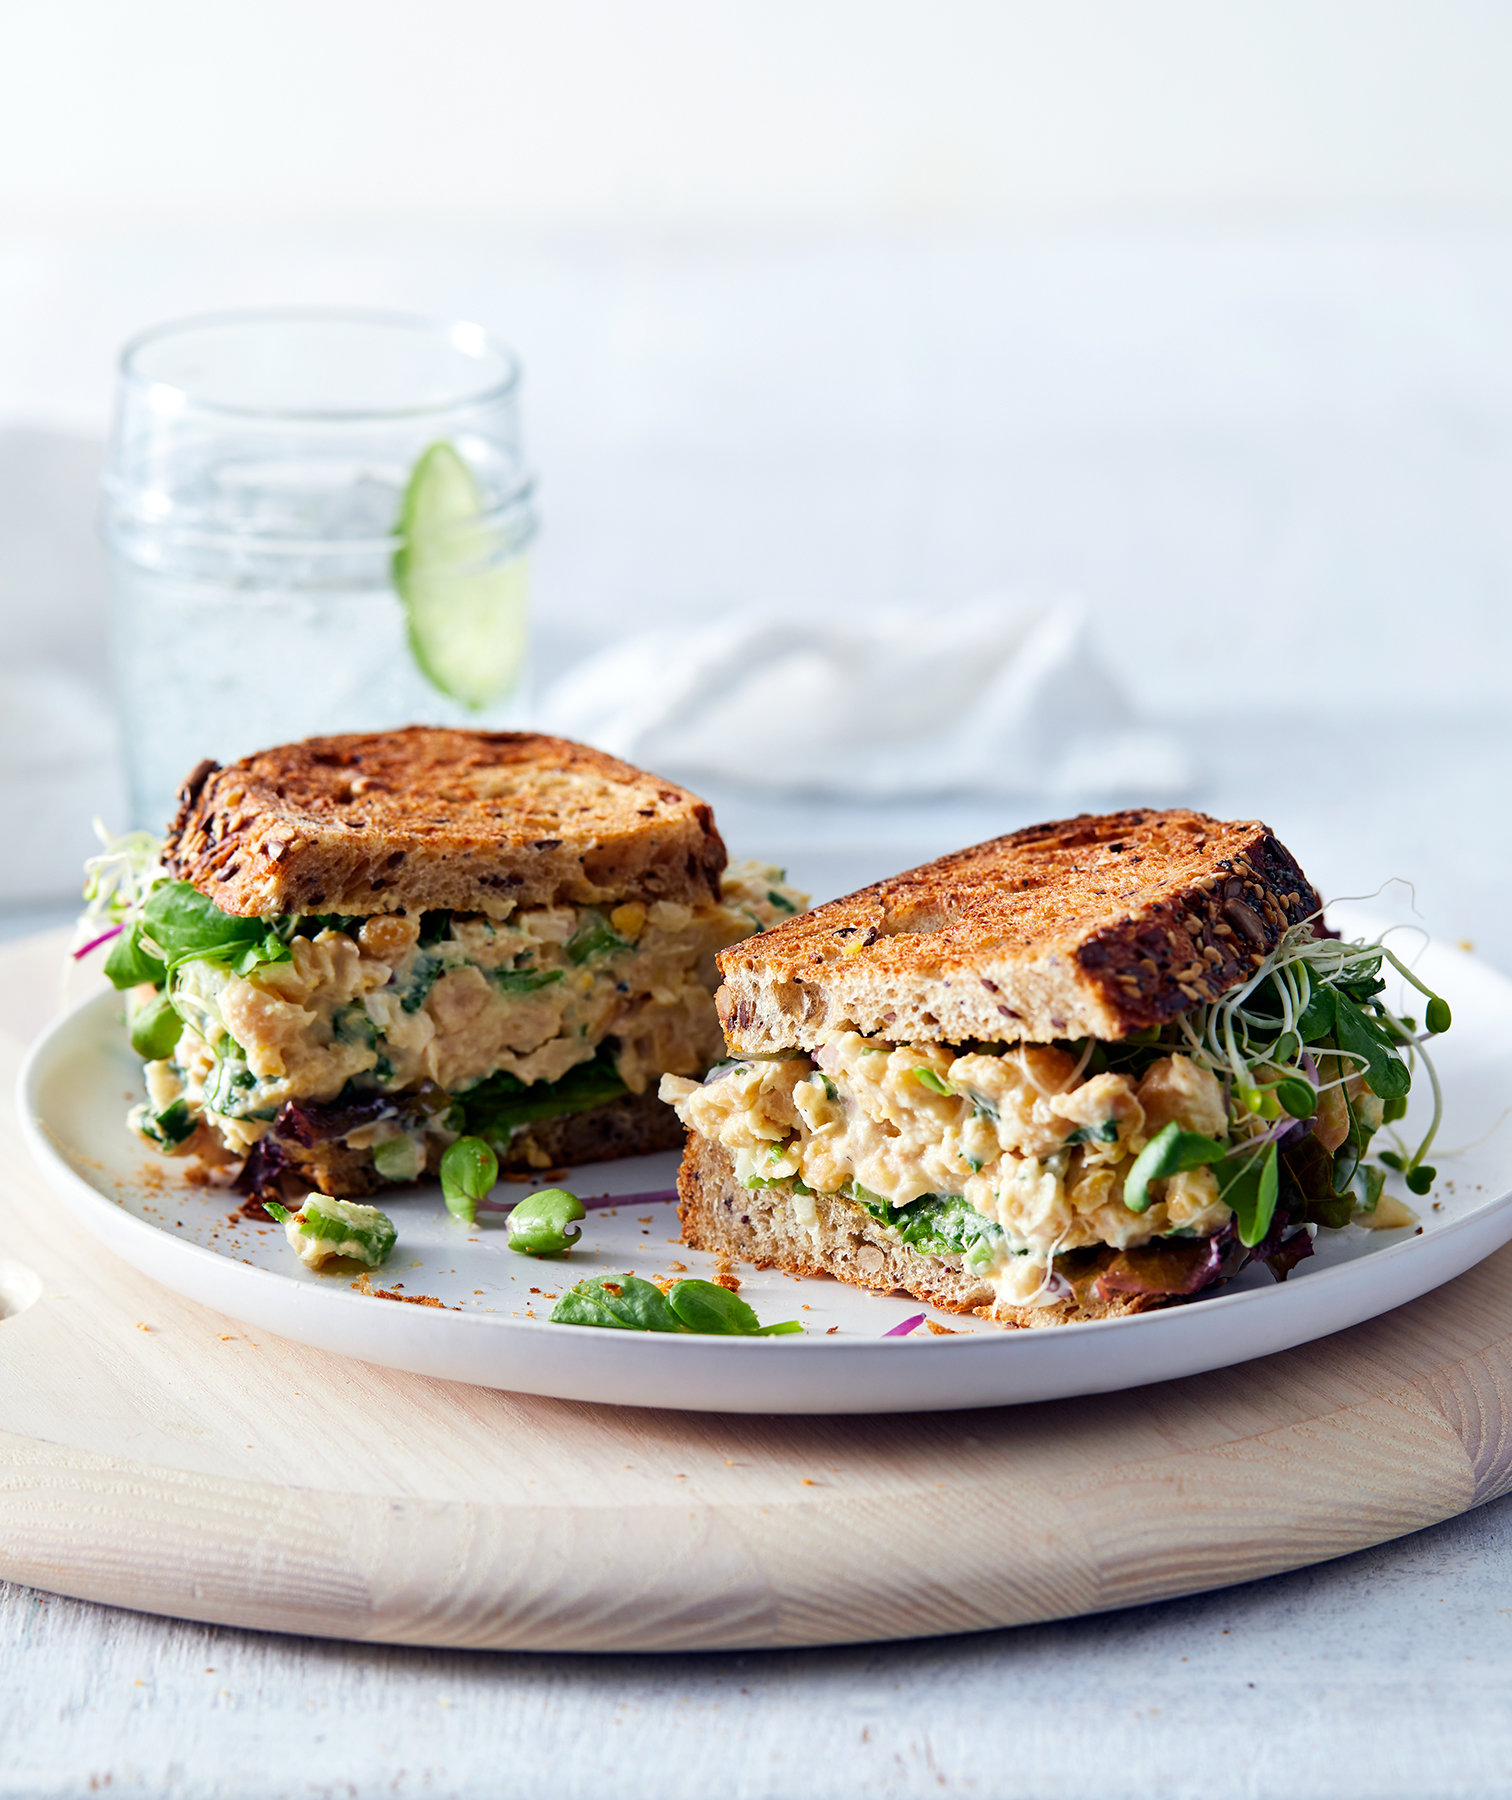 Our Vegetarian Remake of Chicken Salad Is So Good You Won't Miss the Meat